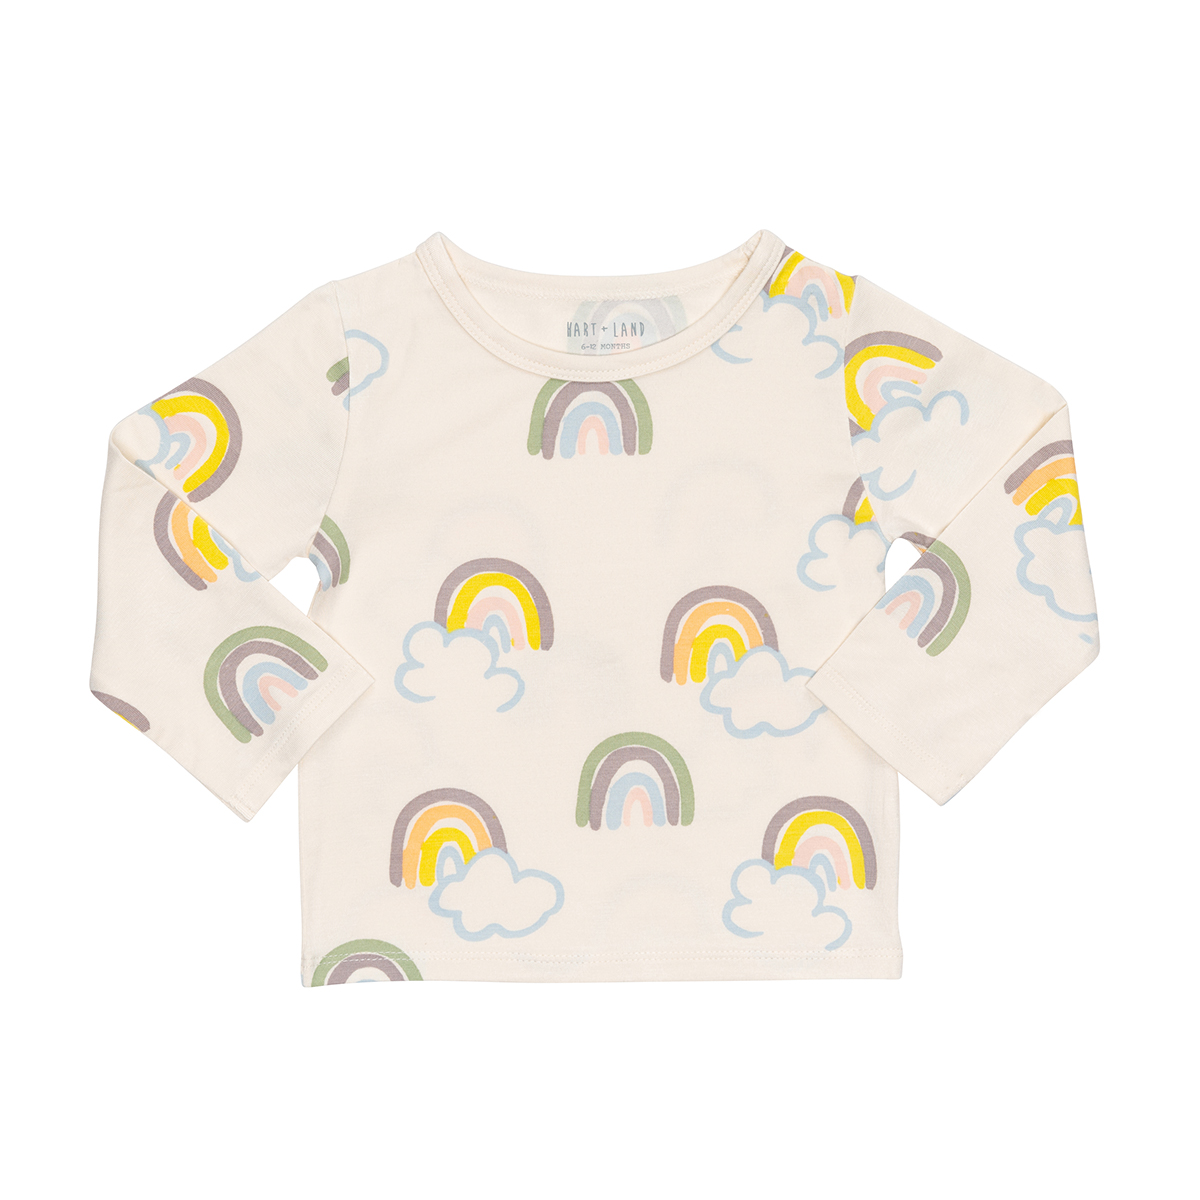 hart + land bamboo rainbow long sleeve crew tee